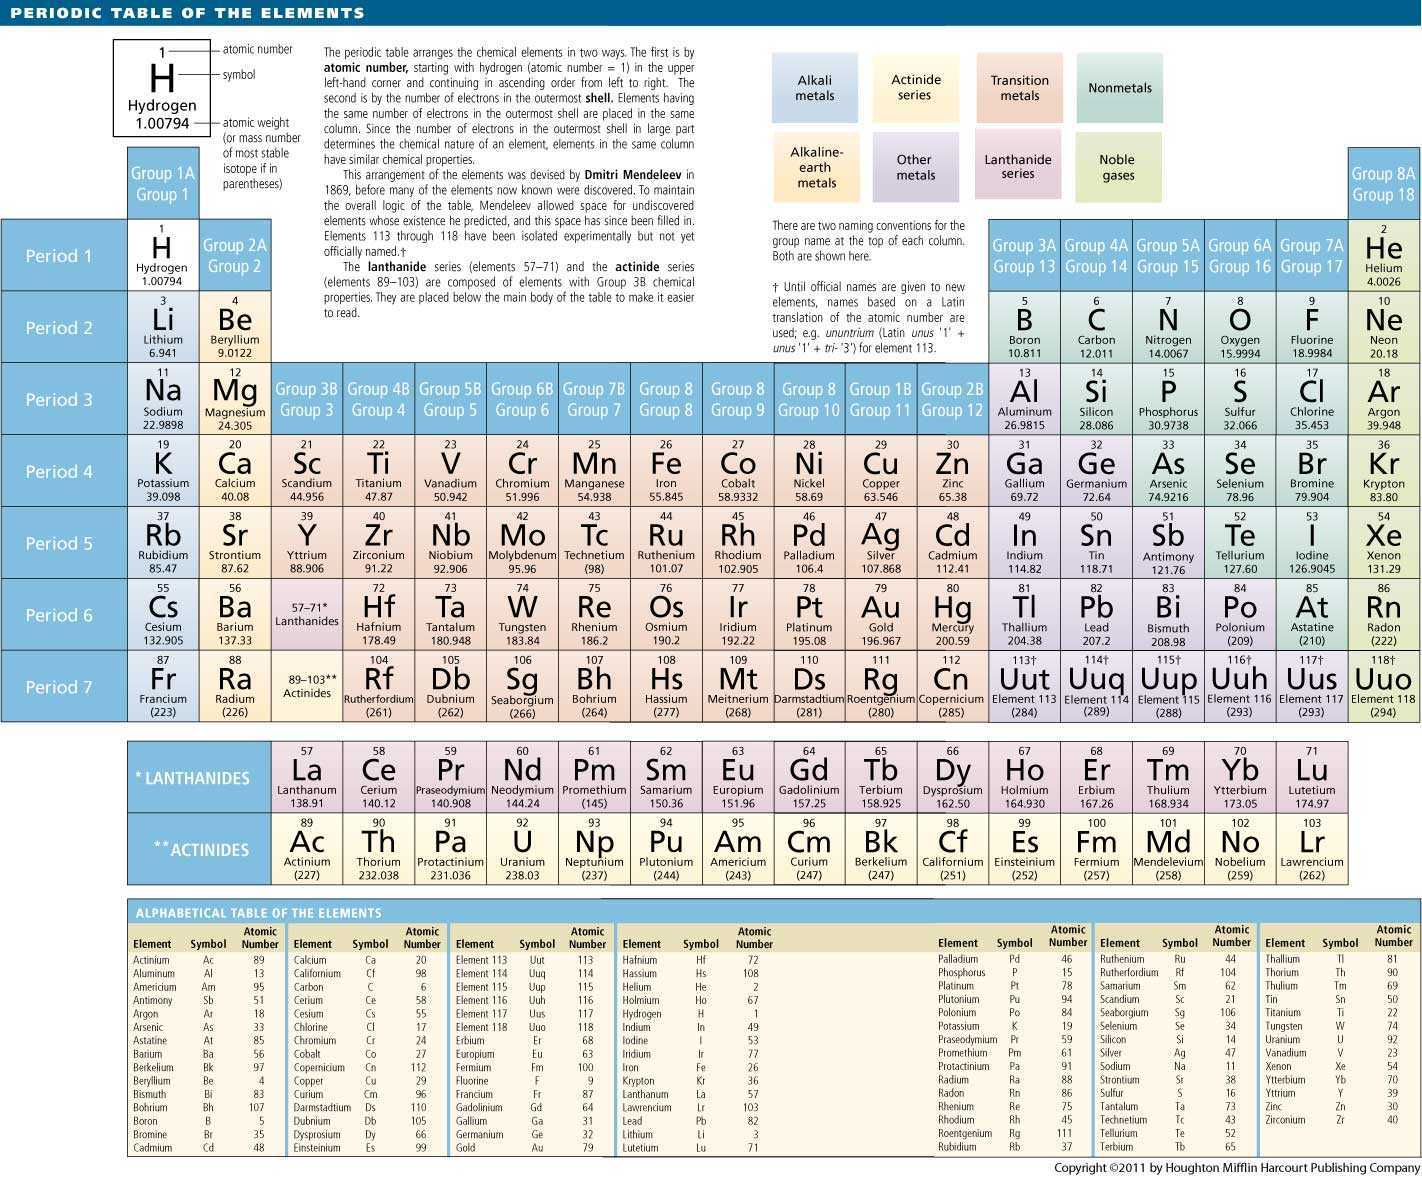 Periodic table dictionary definition periodic table defined periodic table gamestrikefo Choice Image